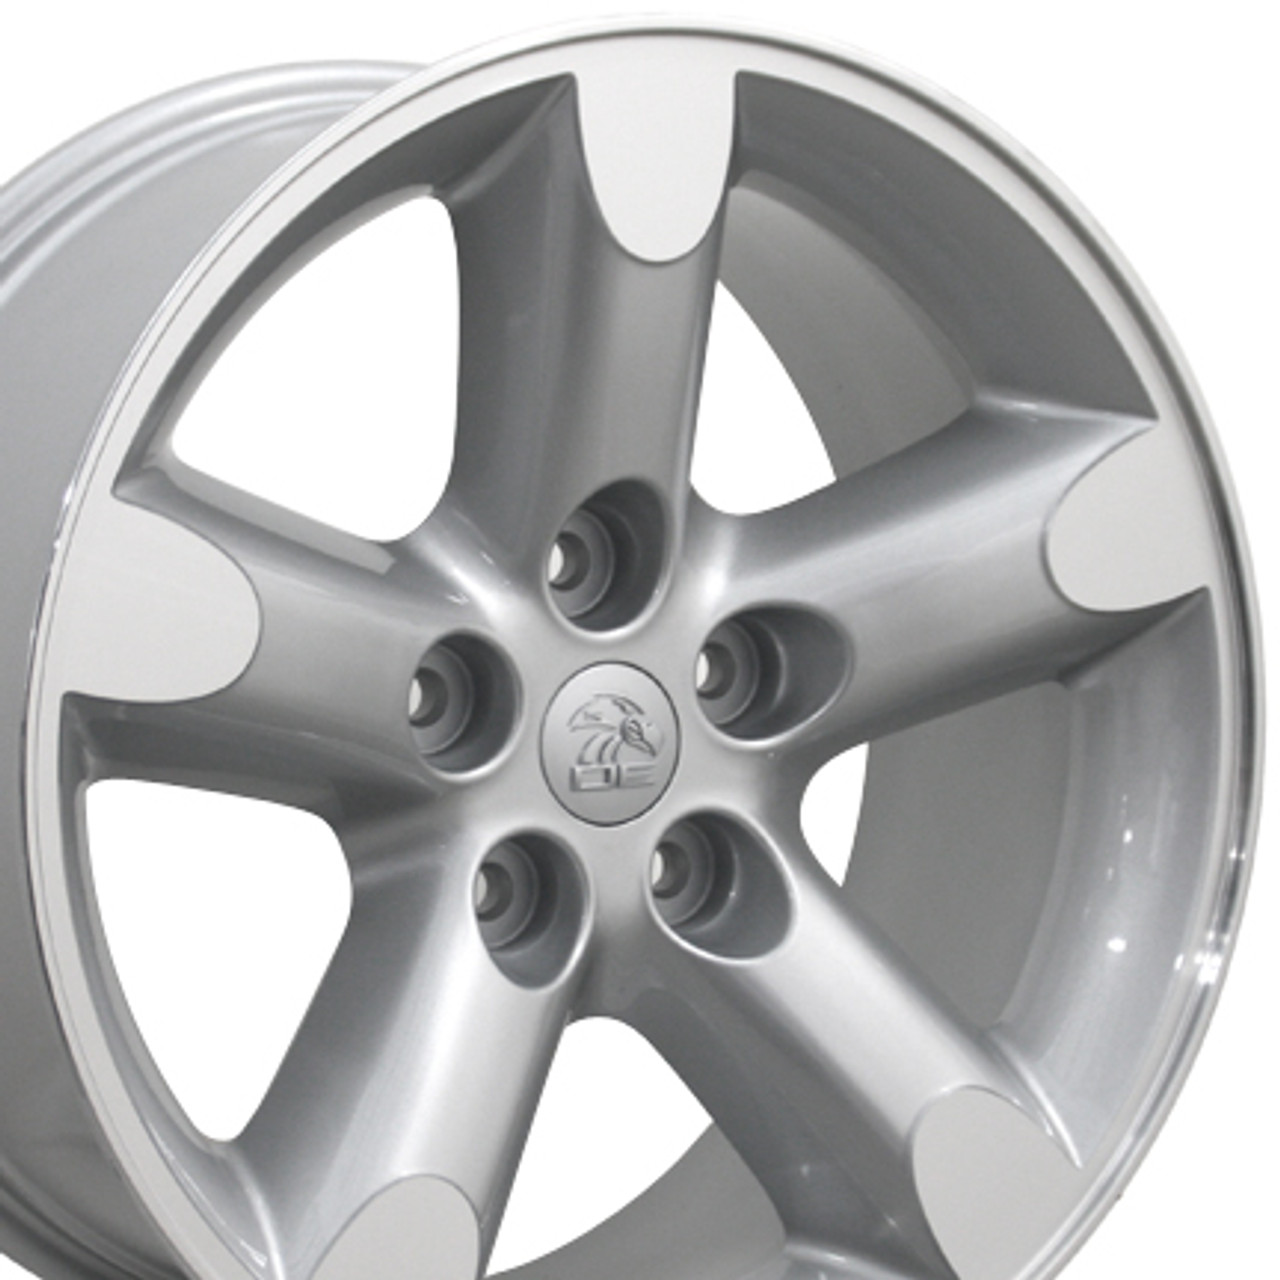 "20"" Fits Dodge Ram 1500 Chrysler Durango Dakota Wheels"